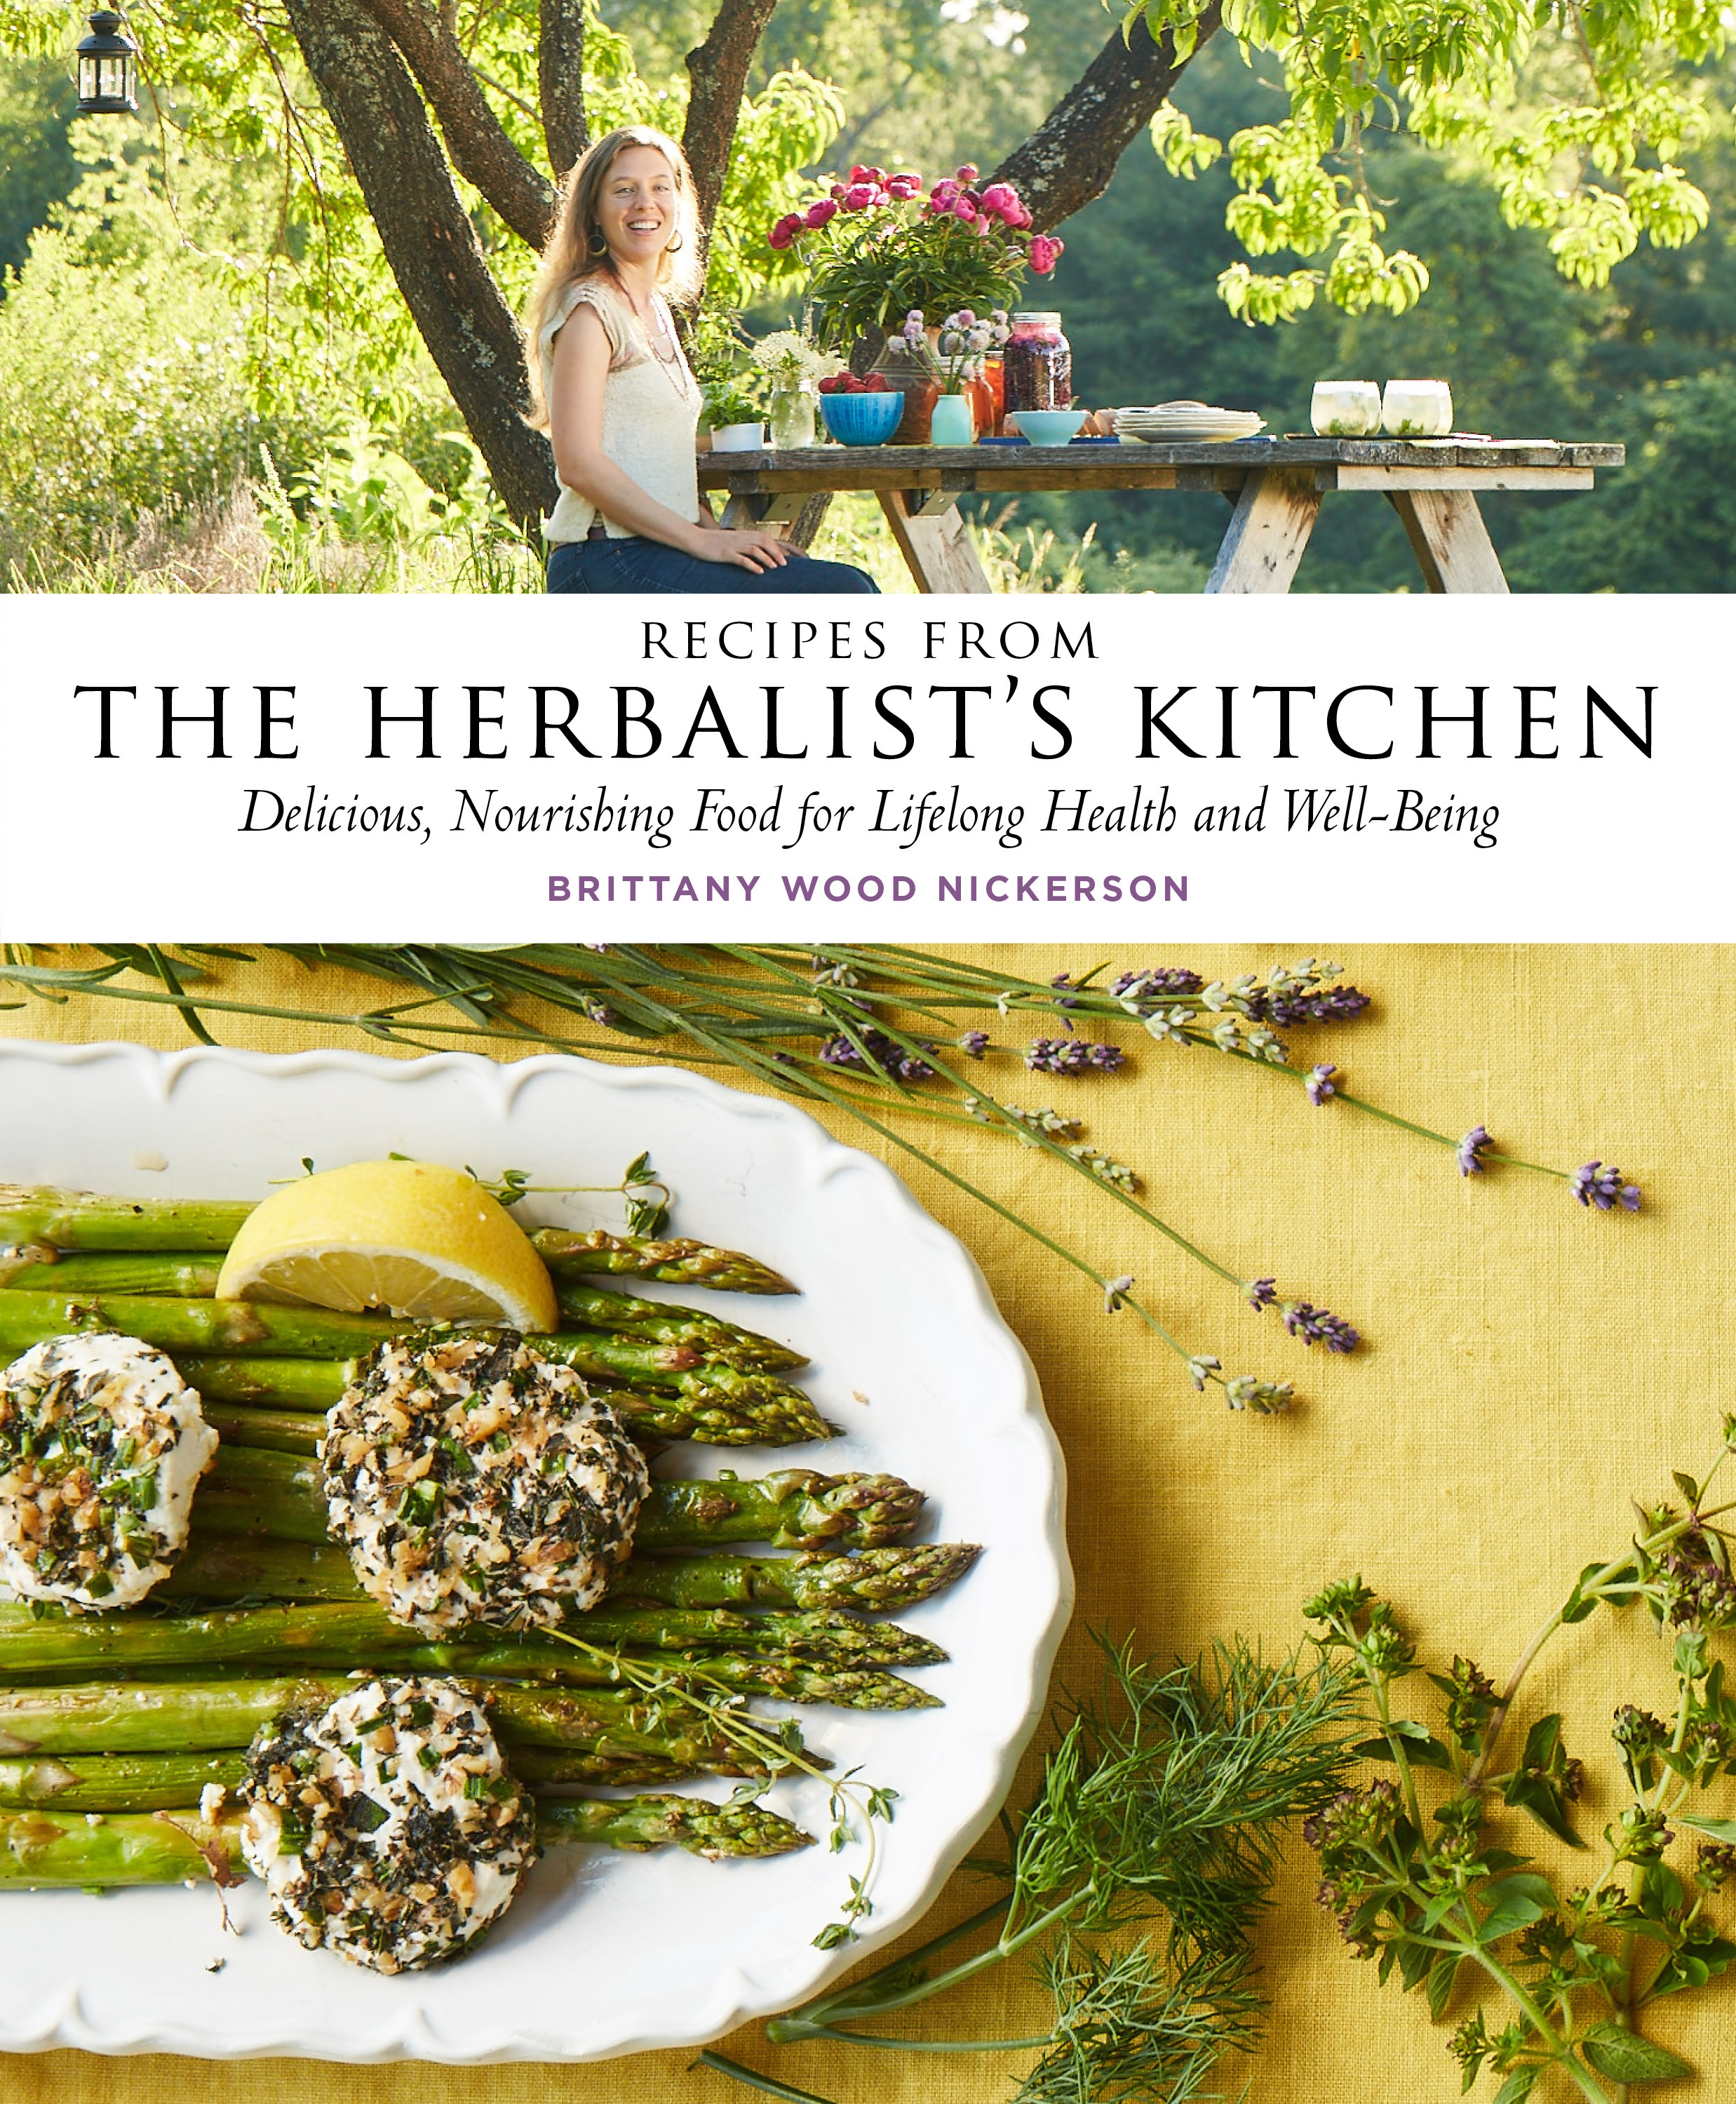 Recipes from the Herbalist's Kitchen, Herbalist's Kitchen, Herbal Cooking, Kitchen Medicine, Cooking with herbs, plant medicine, herbs, herbalism, Brittany Nickerson, Brittany Wood Nickerson, Storey, Storey Publishing, seasonal eating, Western Mass, Massachusetts, Northampton, Amherst